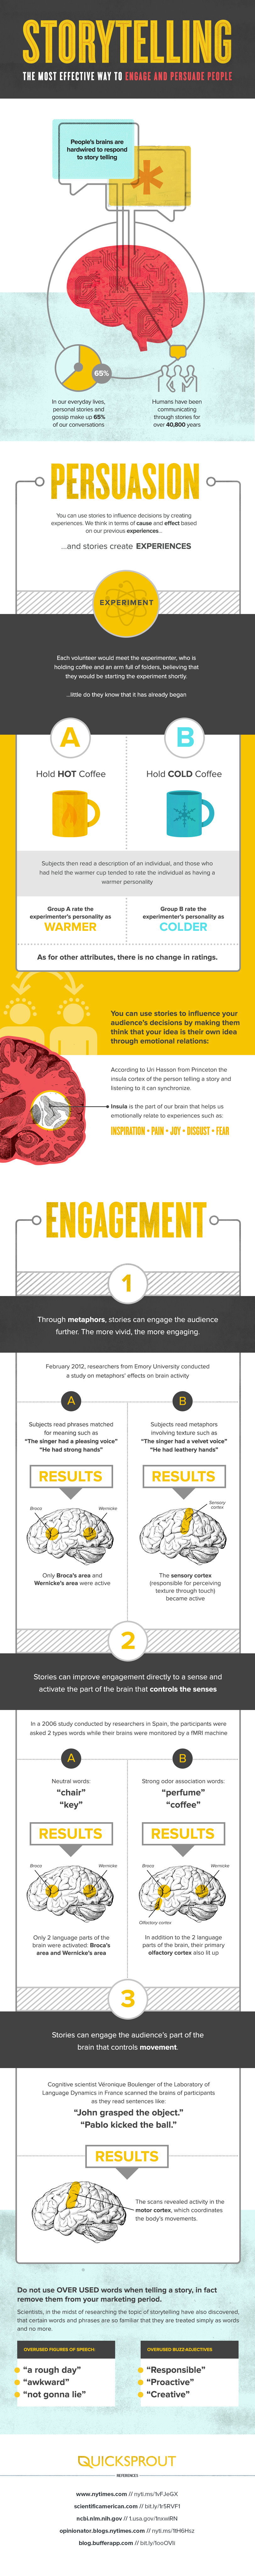 Infographic lists tips and insights into effective brand storytelling